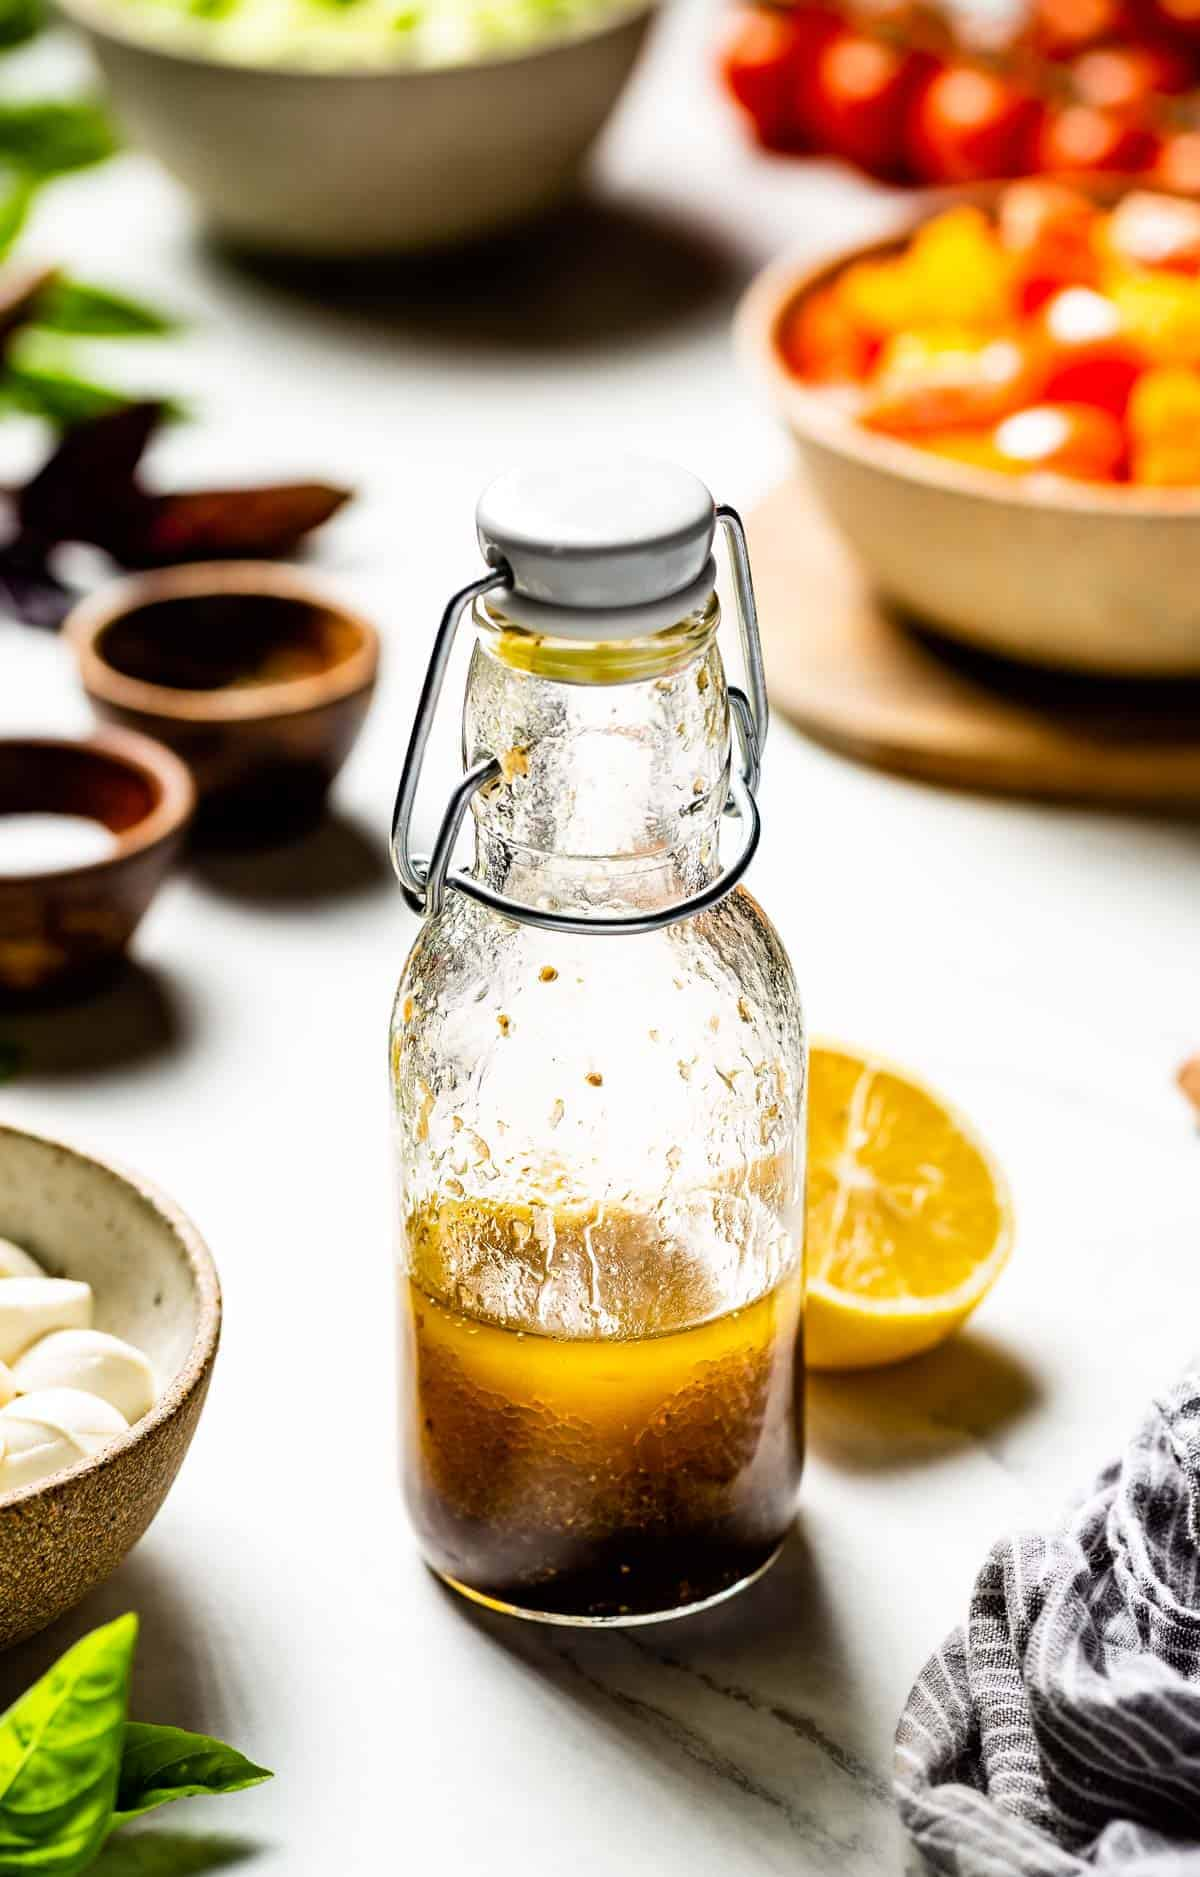 lemon balsamic vinaigrette placed in a bottle with salad ingredients around it.